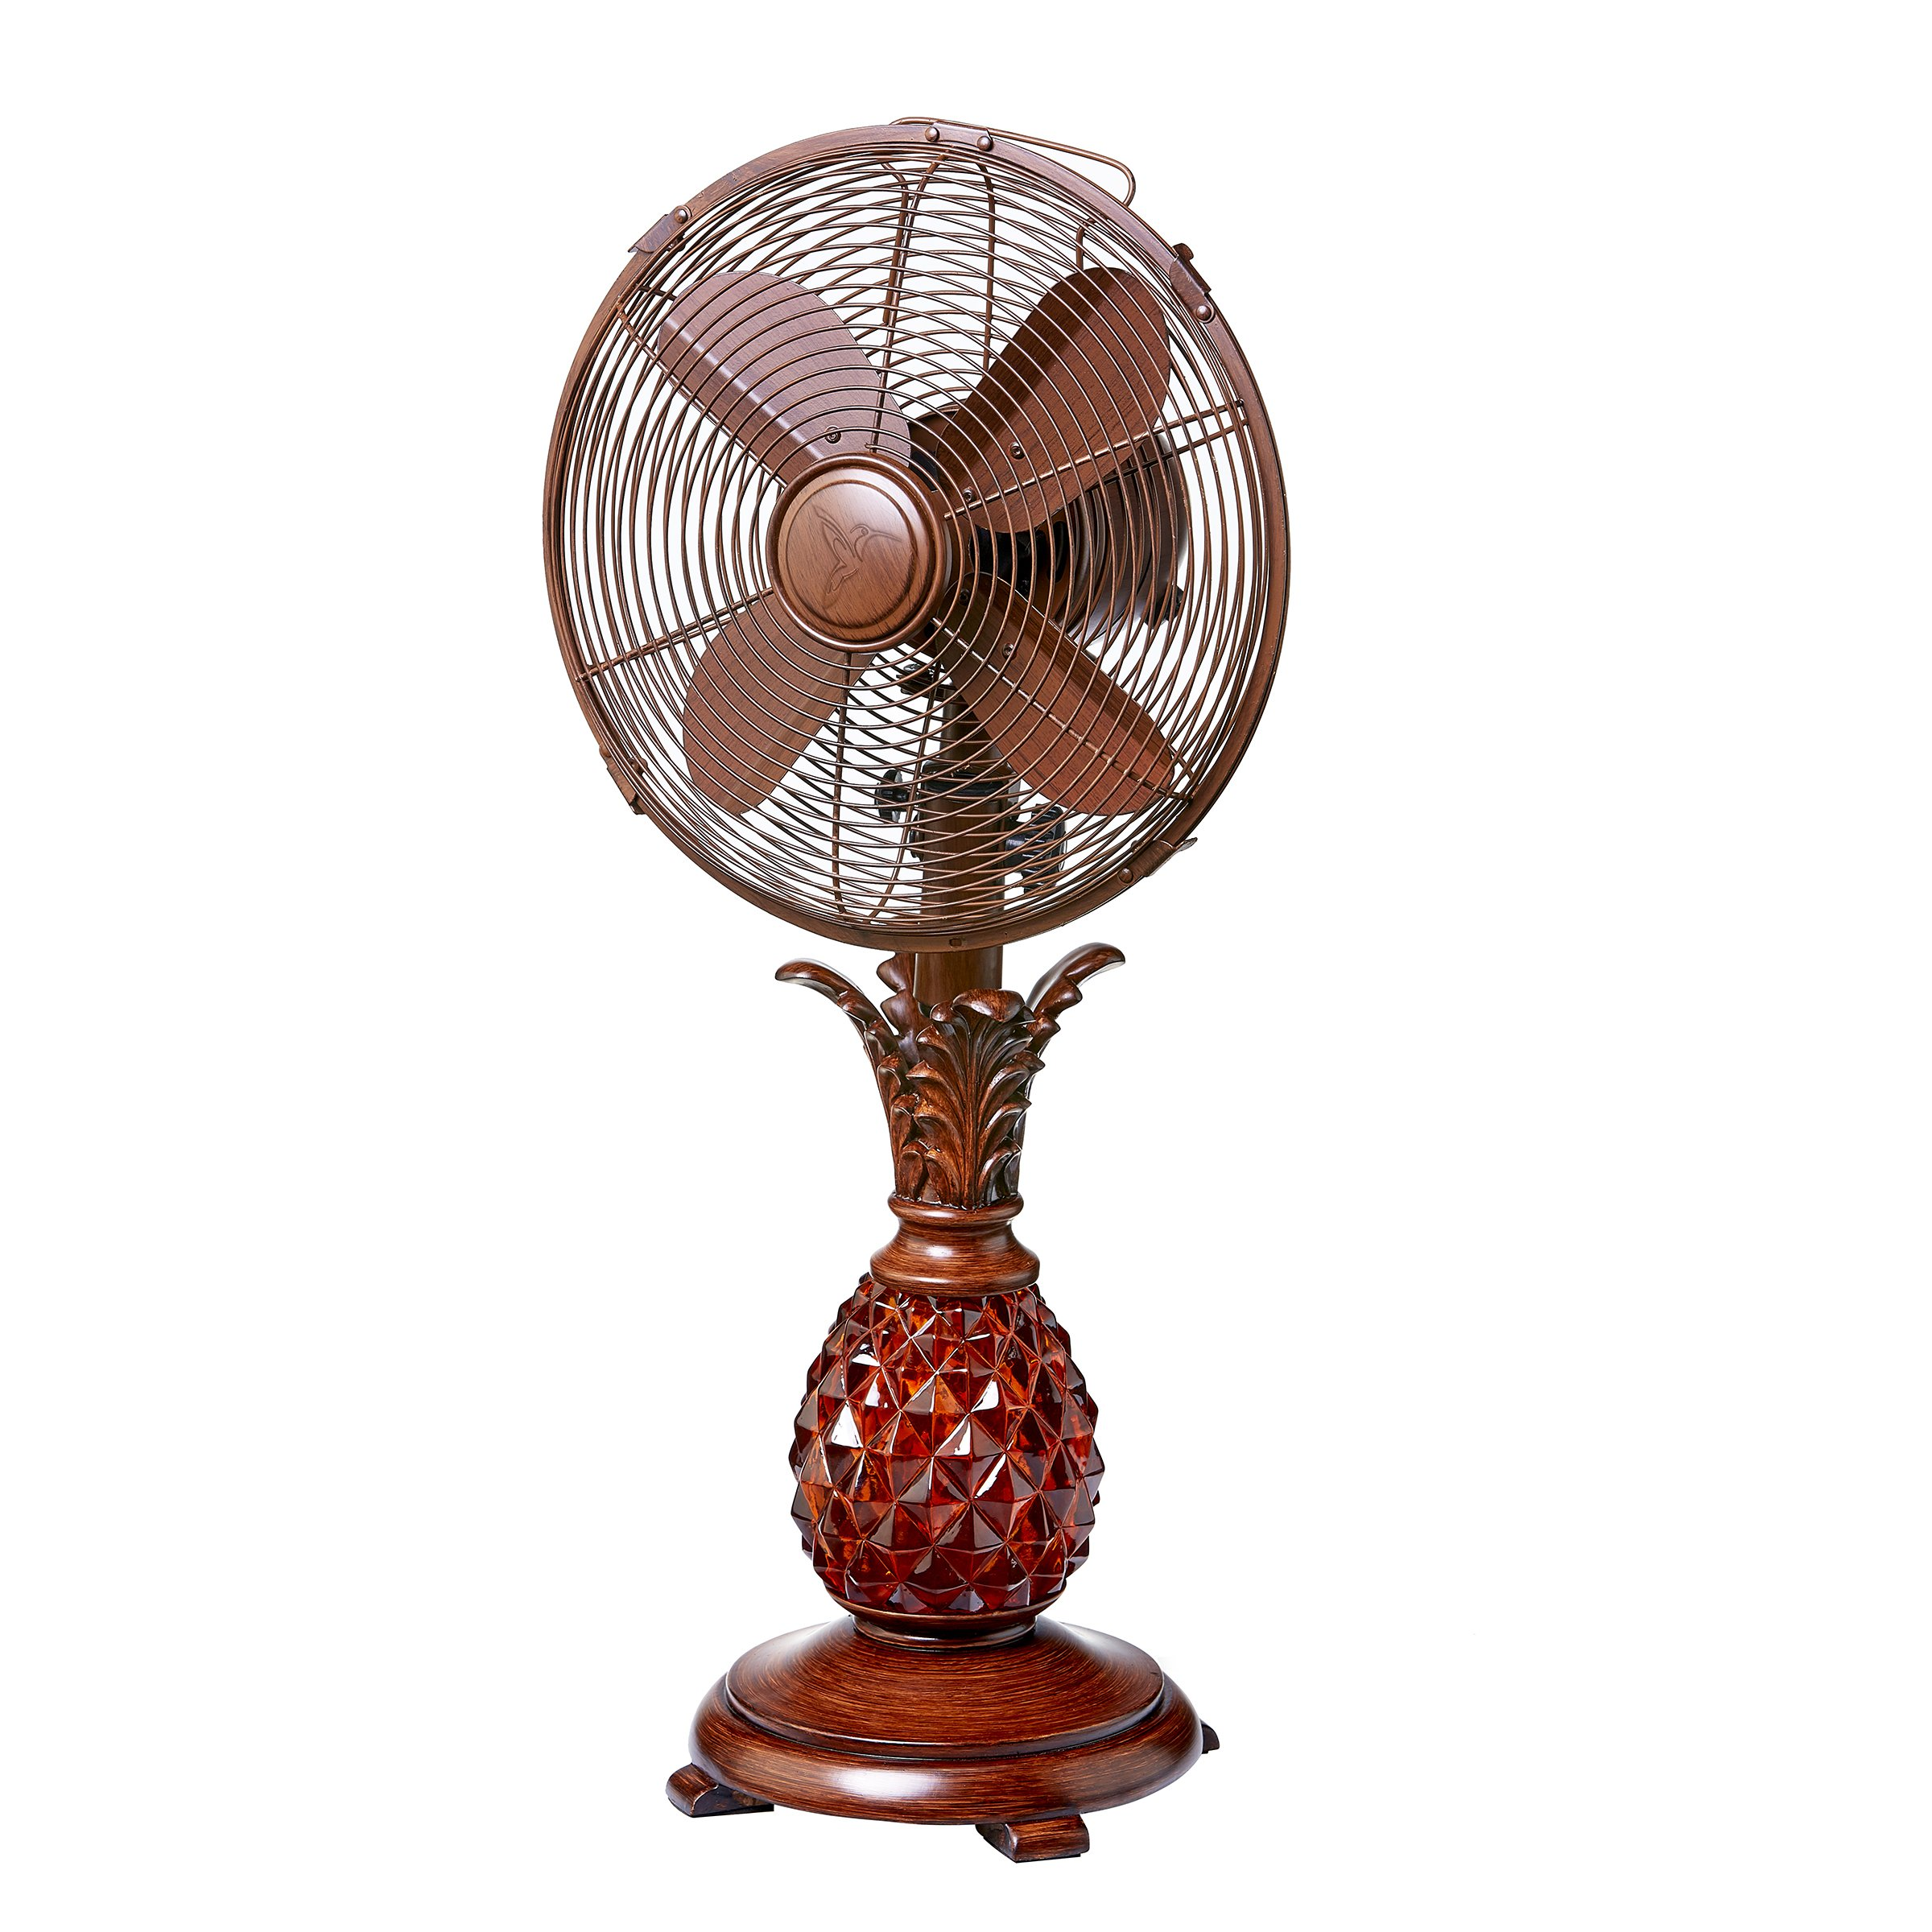 DecoBREEZE Oscillating Table Fan 3-Speed Air Circulator Fan, 10-Inch, Makani Pineapple Base